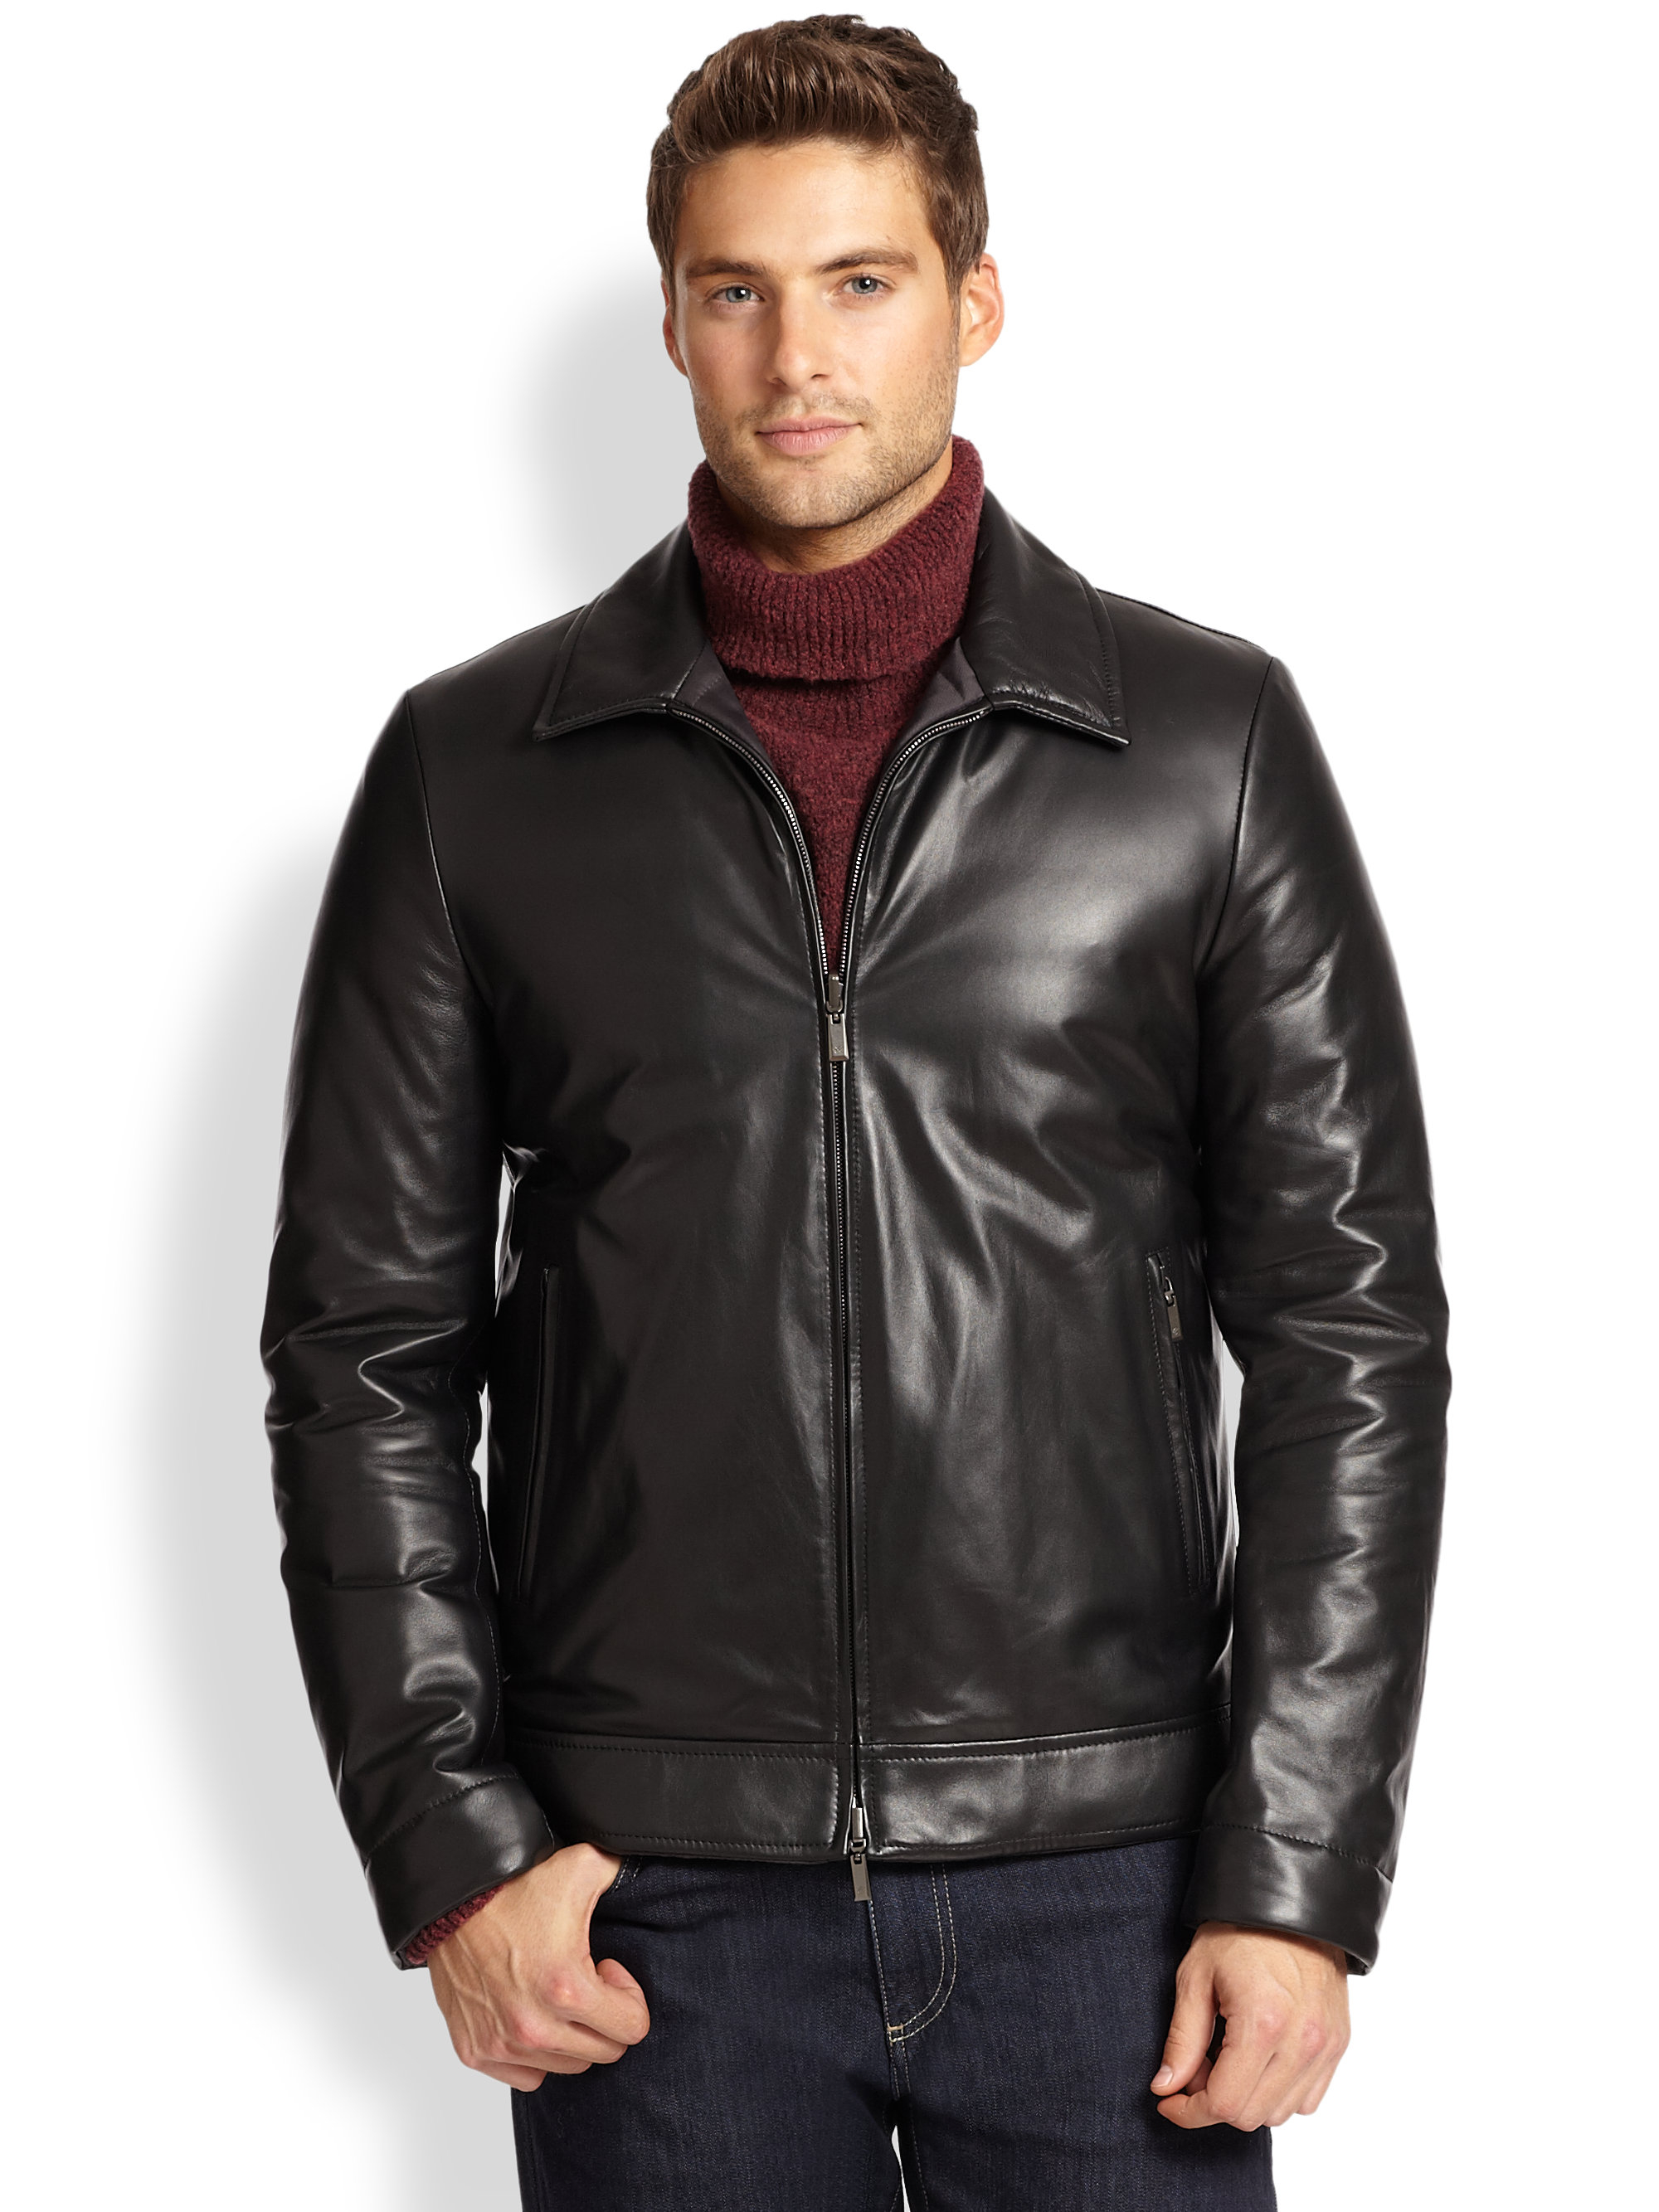 Lyst - Canali Leather Jacket in Black for Men